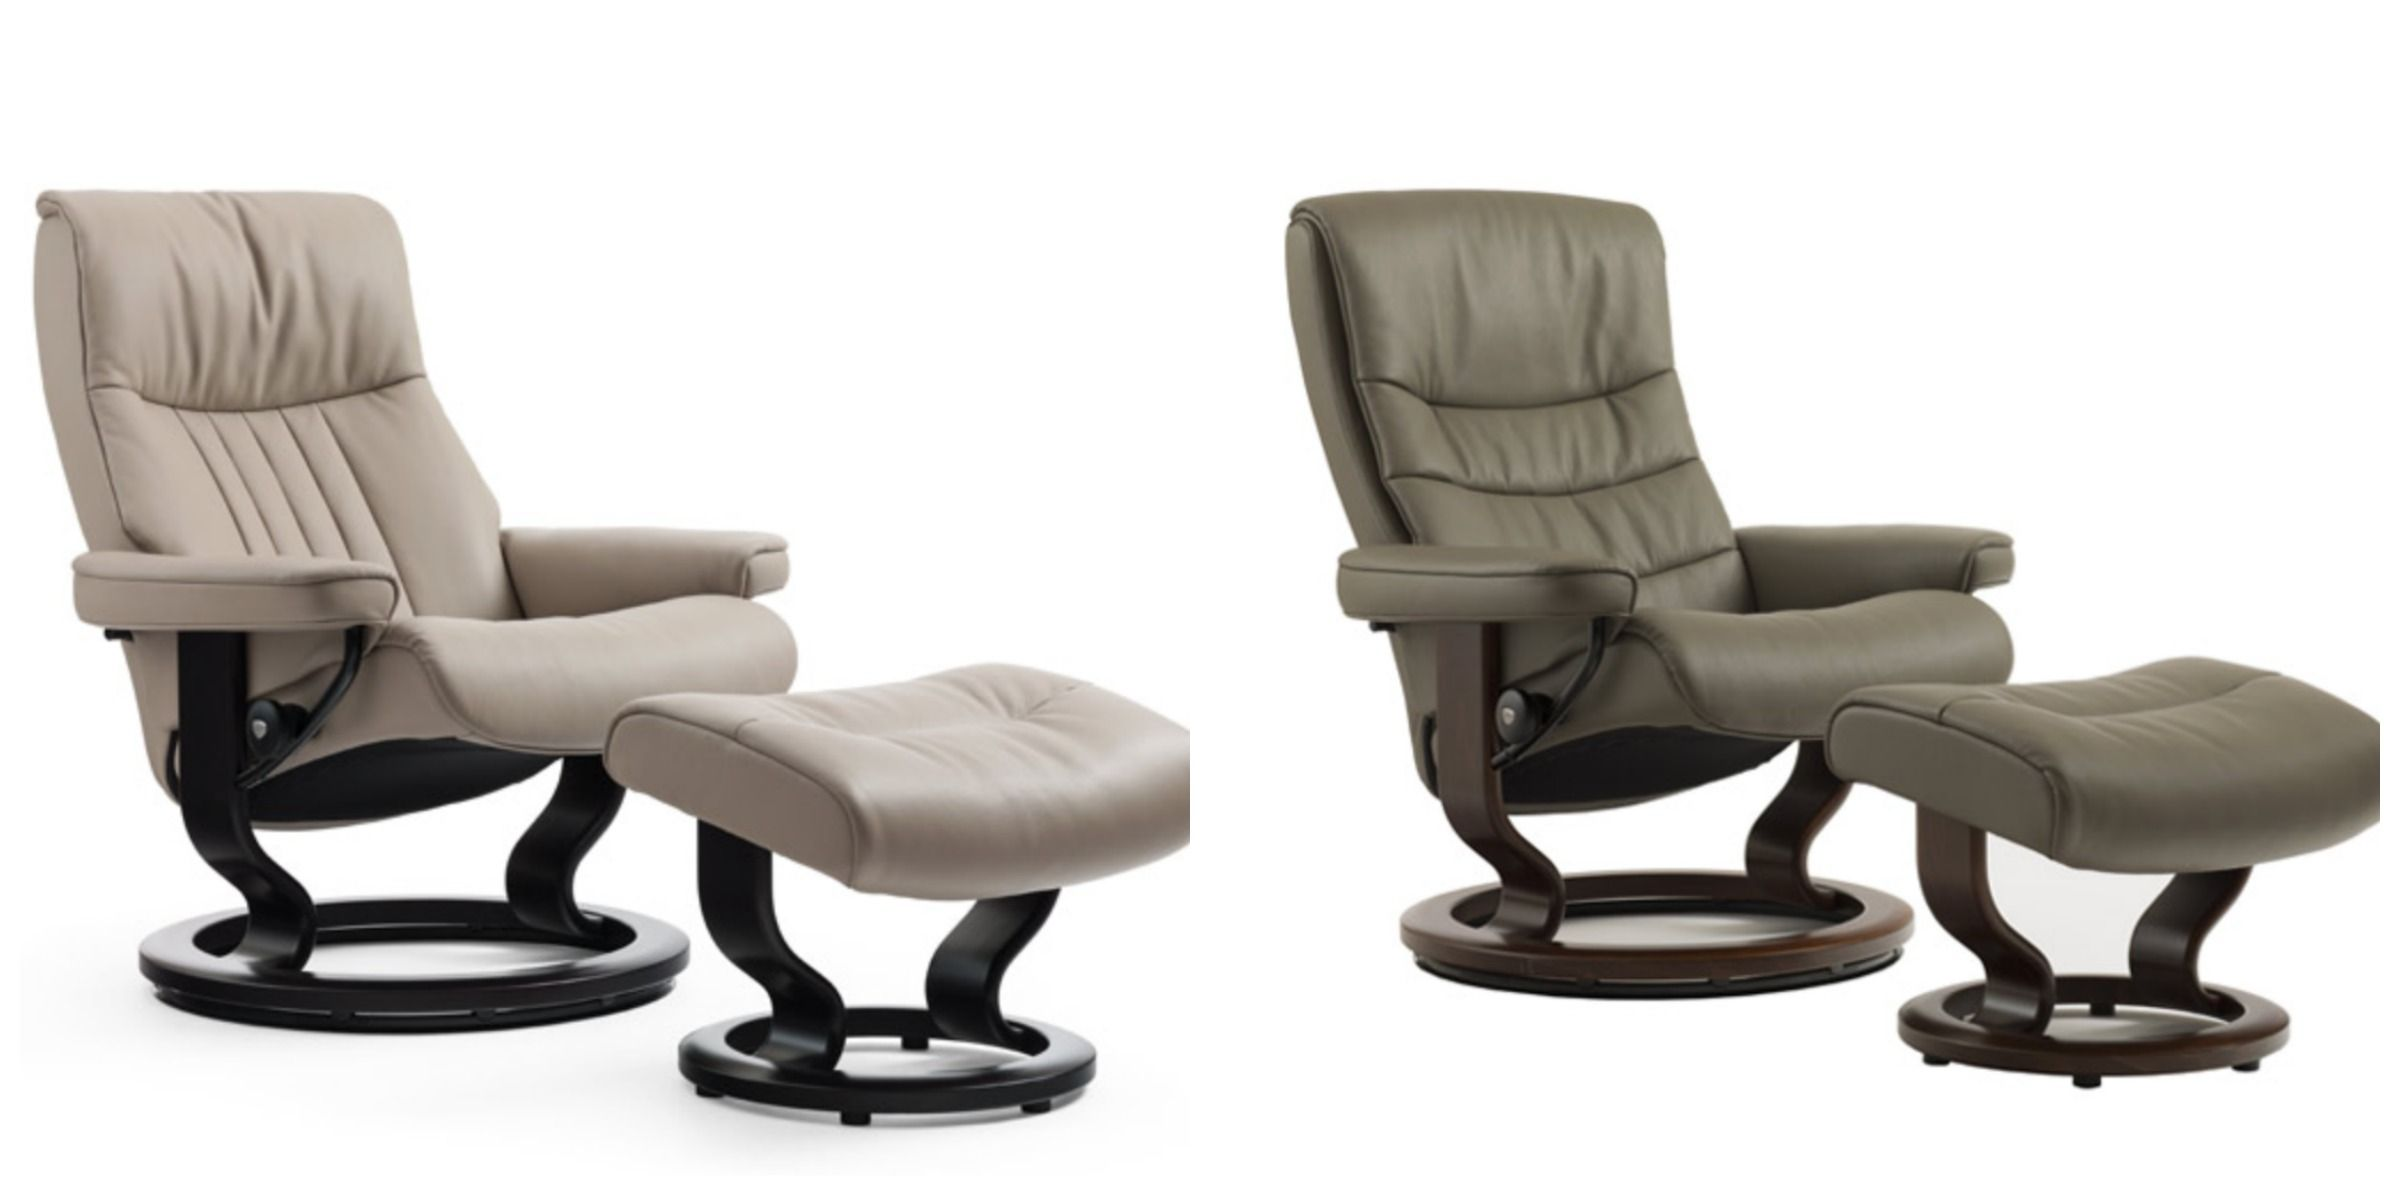 Stressless Fernsehsessel Stressless Nordic And Stressless Crown Stressless Recliners